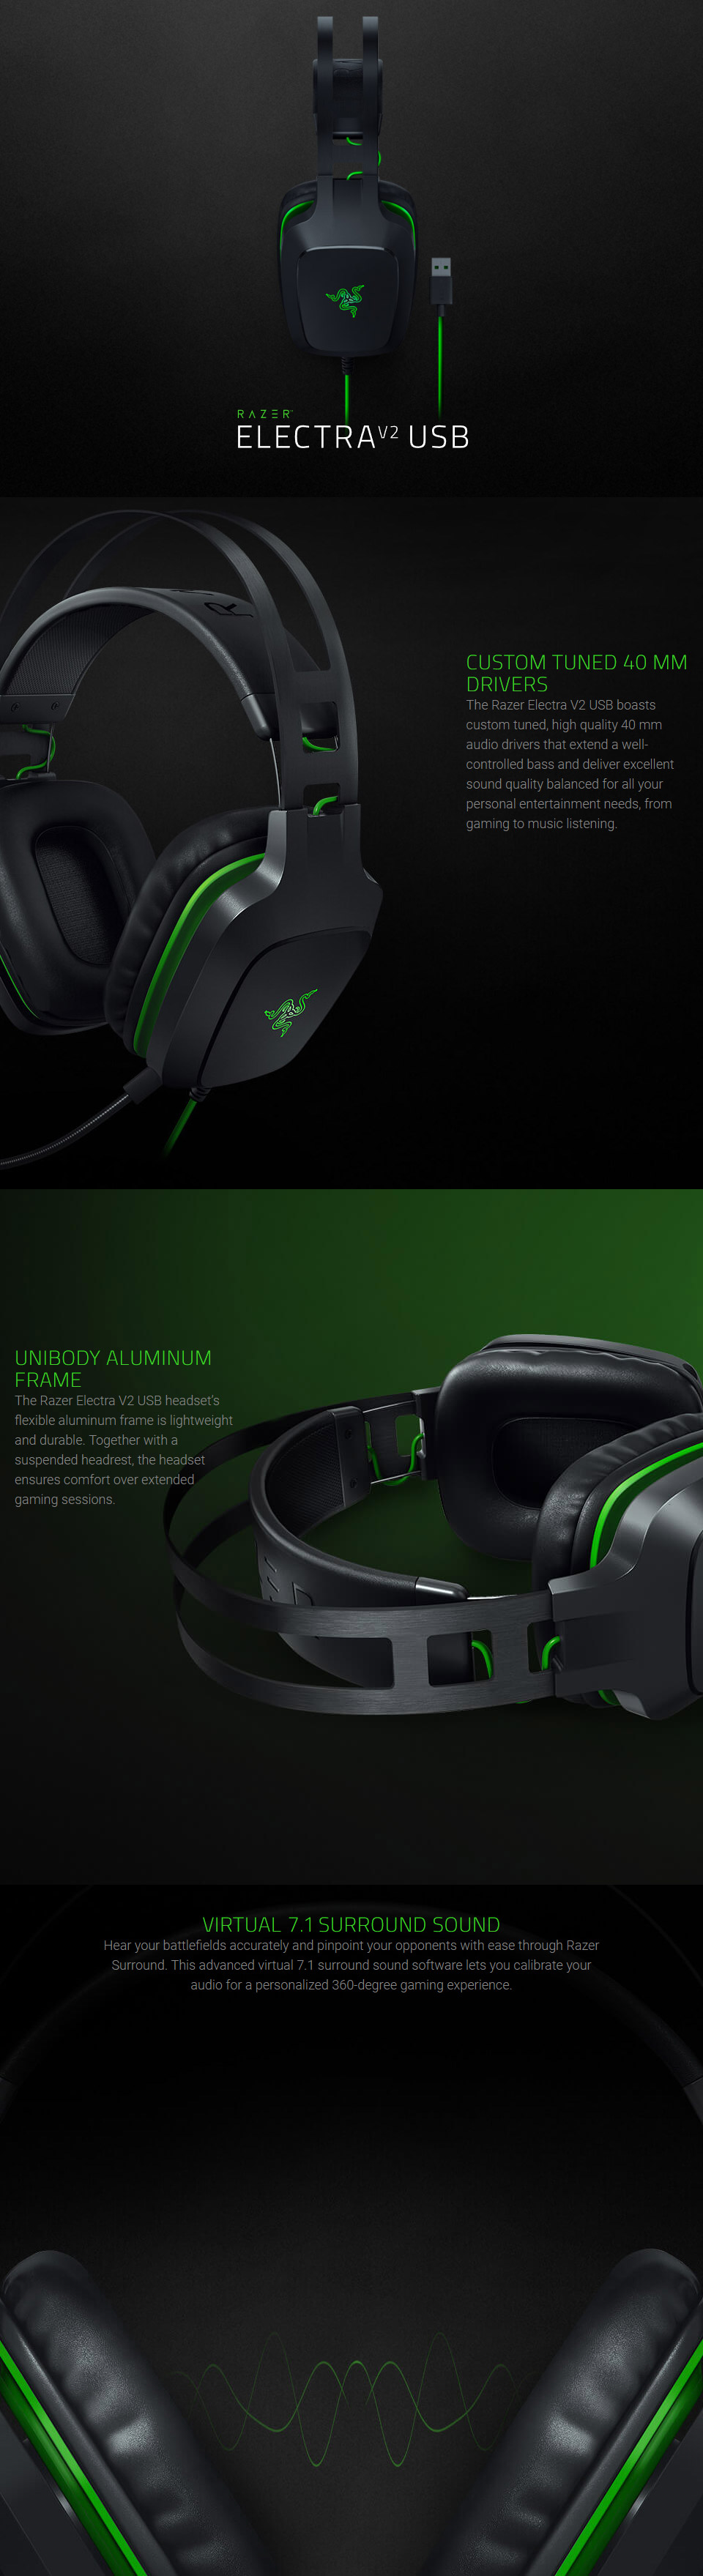 569182220de ... 7.1 surround sound for 360-degree immersion. Outfitted with a unibody  aluminium frame and plush leatherette ear cushions, the Razer Electra V2  USB is ...